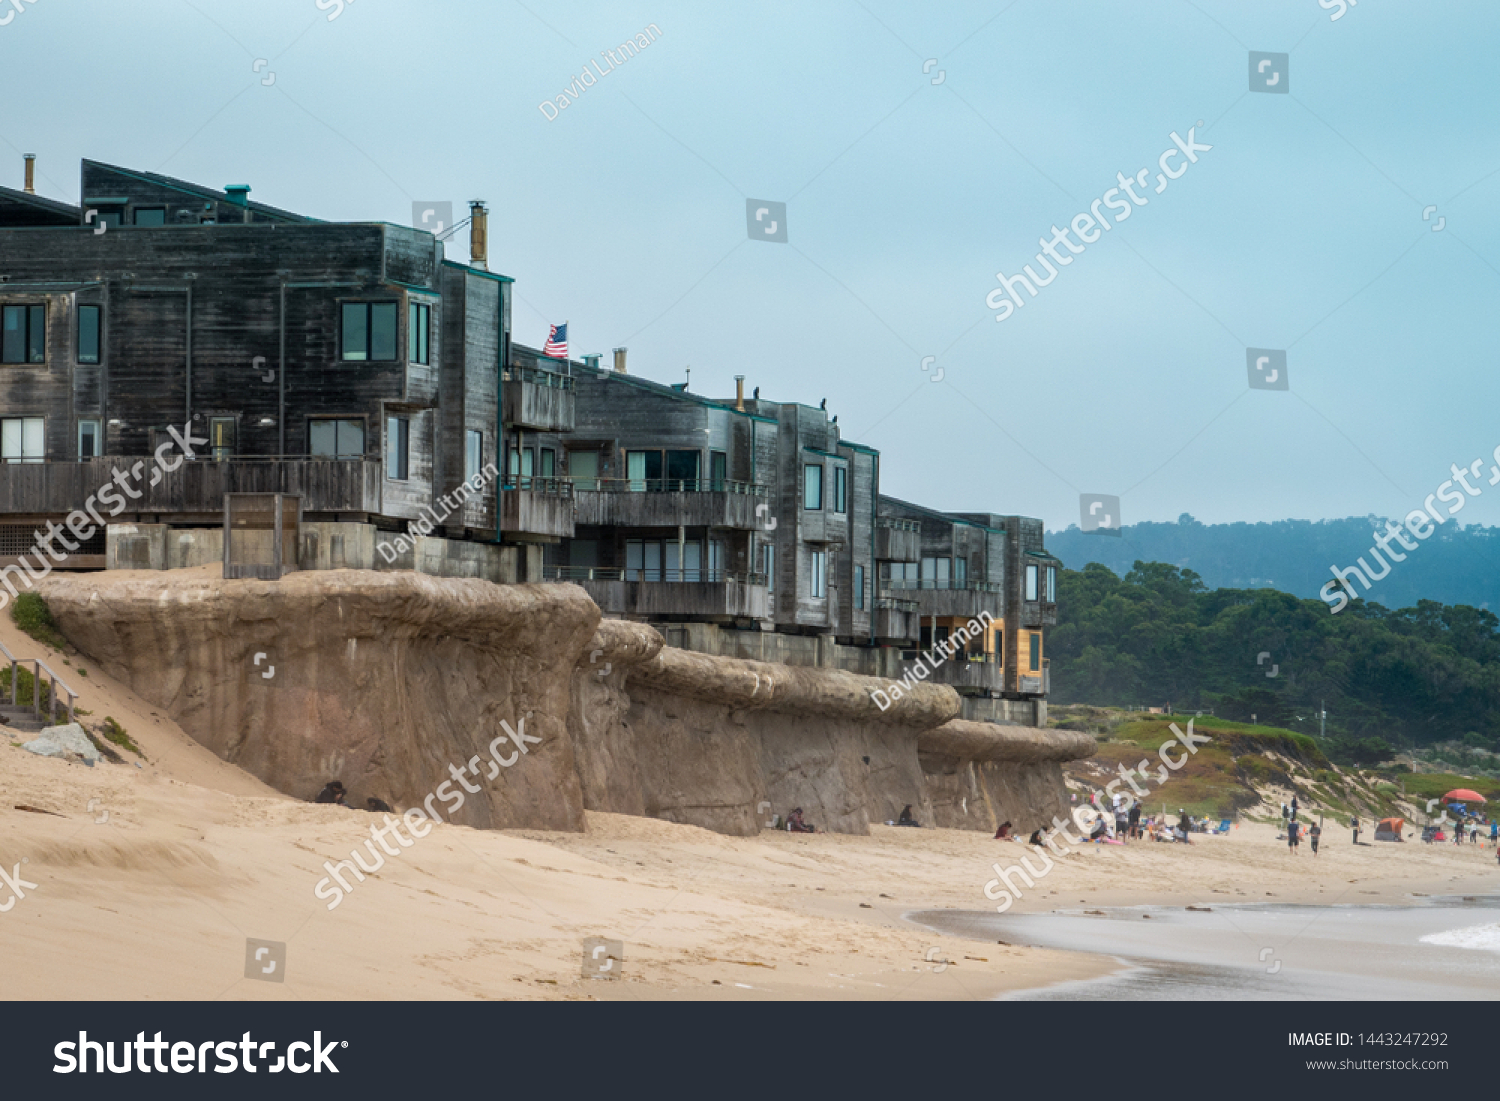 Summer on Del Monte Beach, along the central coast of  California in Monterey, with the Ocean Harbor House condominiums  on top of the bluff, as featured in the HBO hit Big Little Lies.